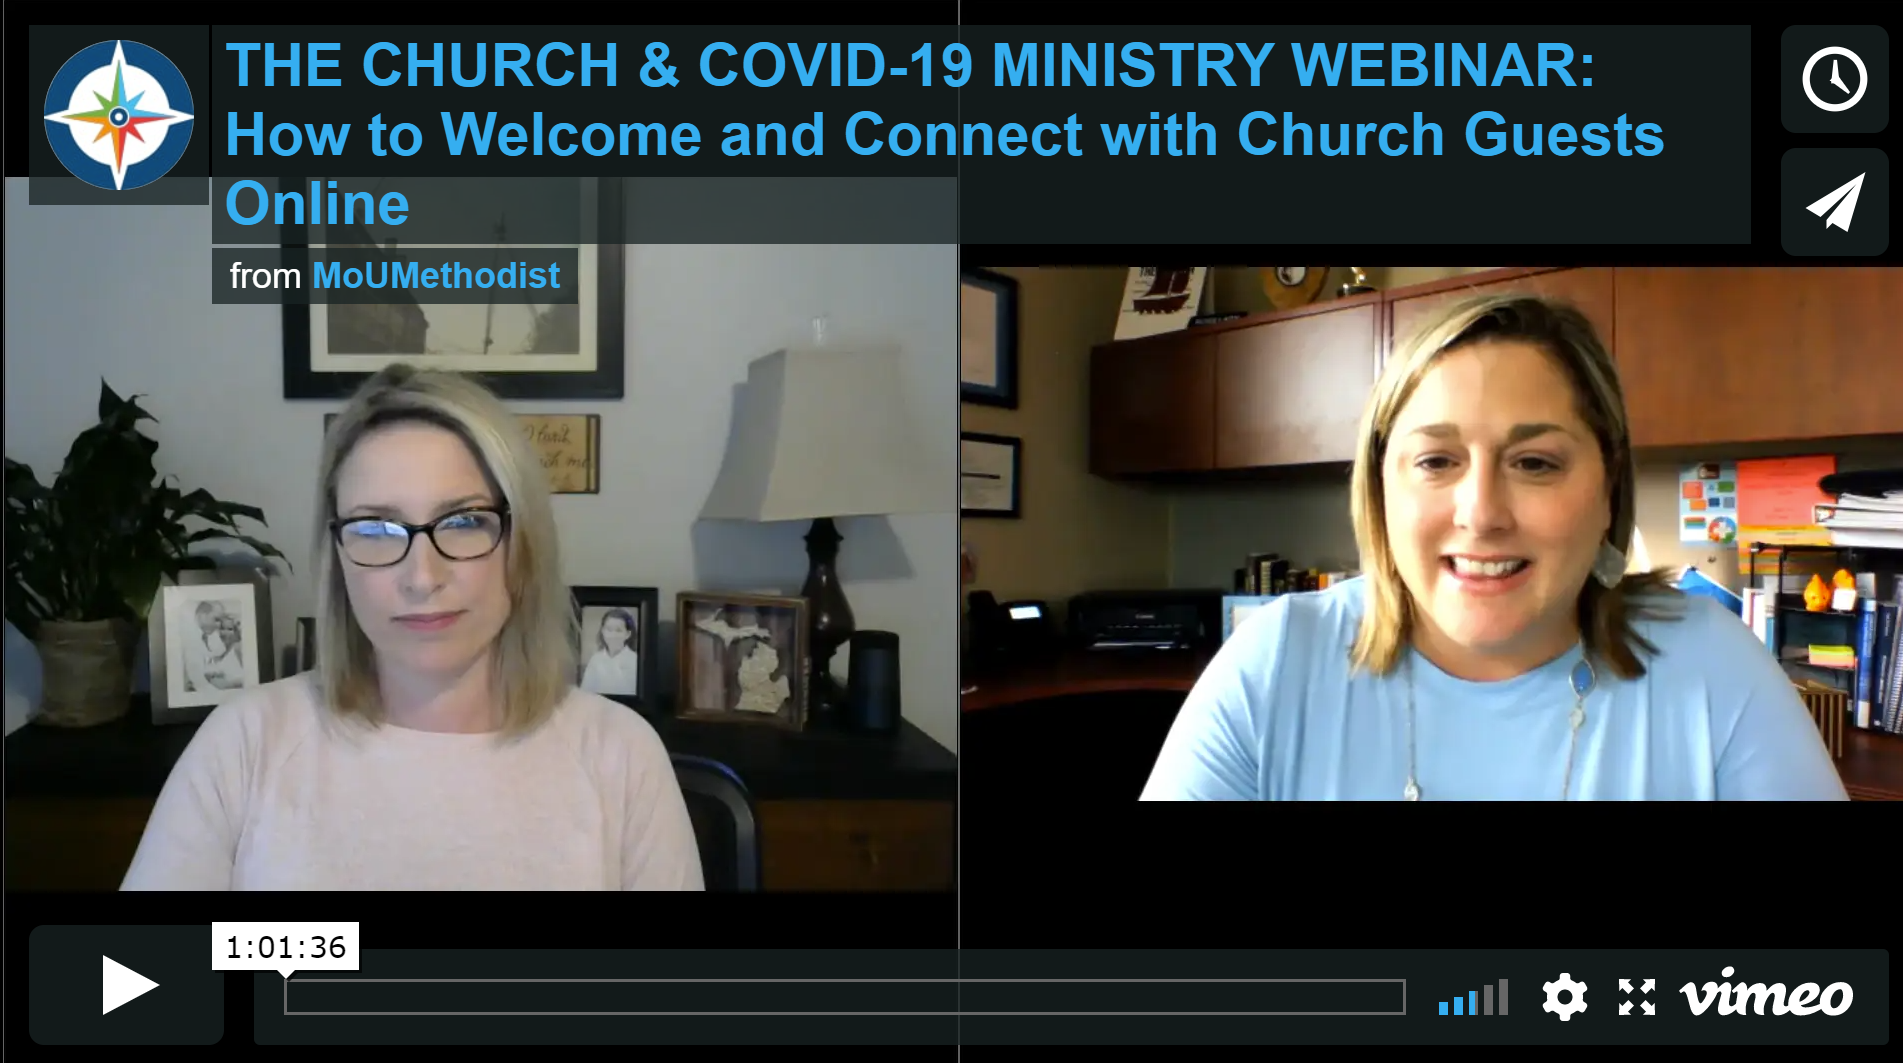 The Church & COVID-19 Ministry Webinar: How to Welcome and Connect with Church Guests Online